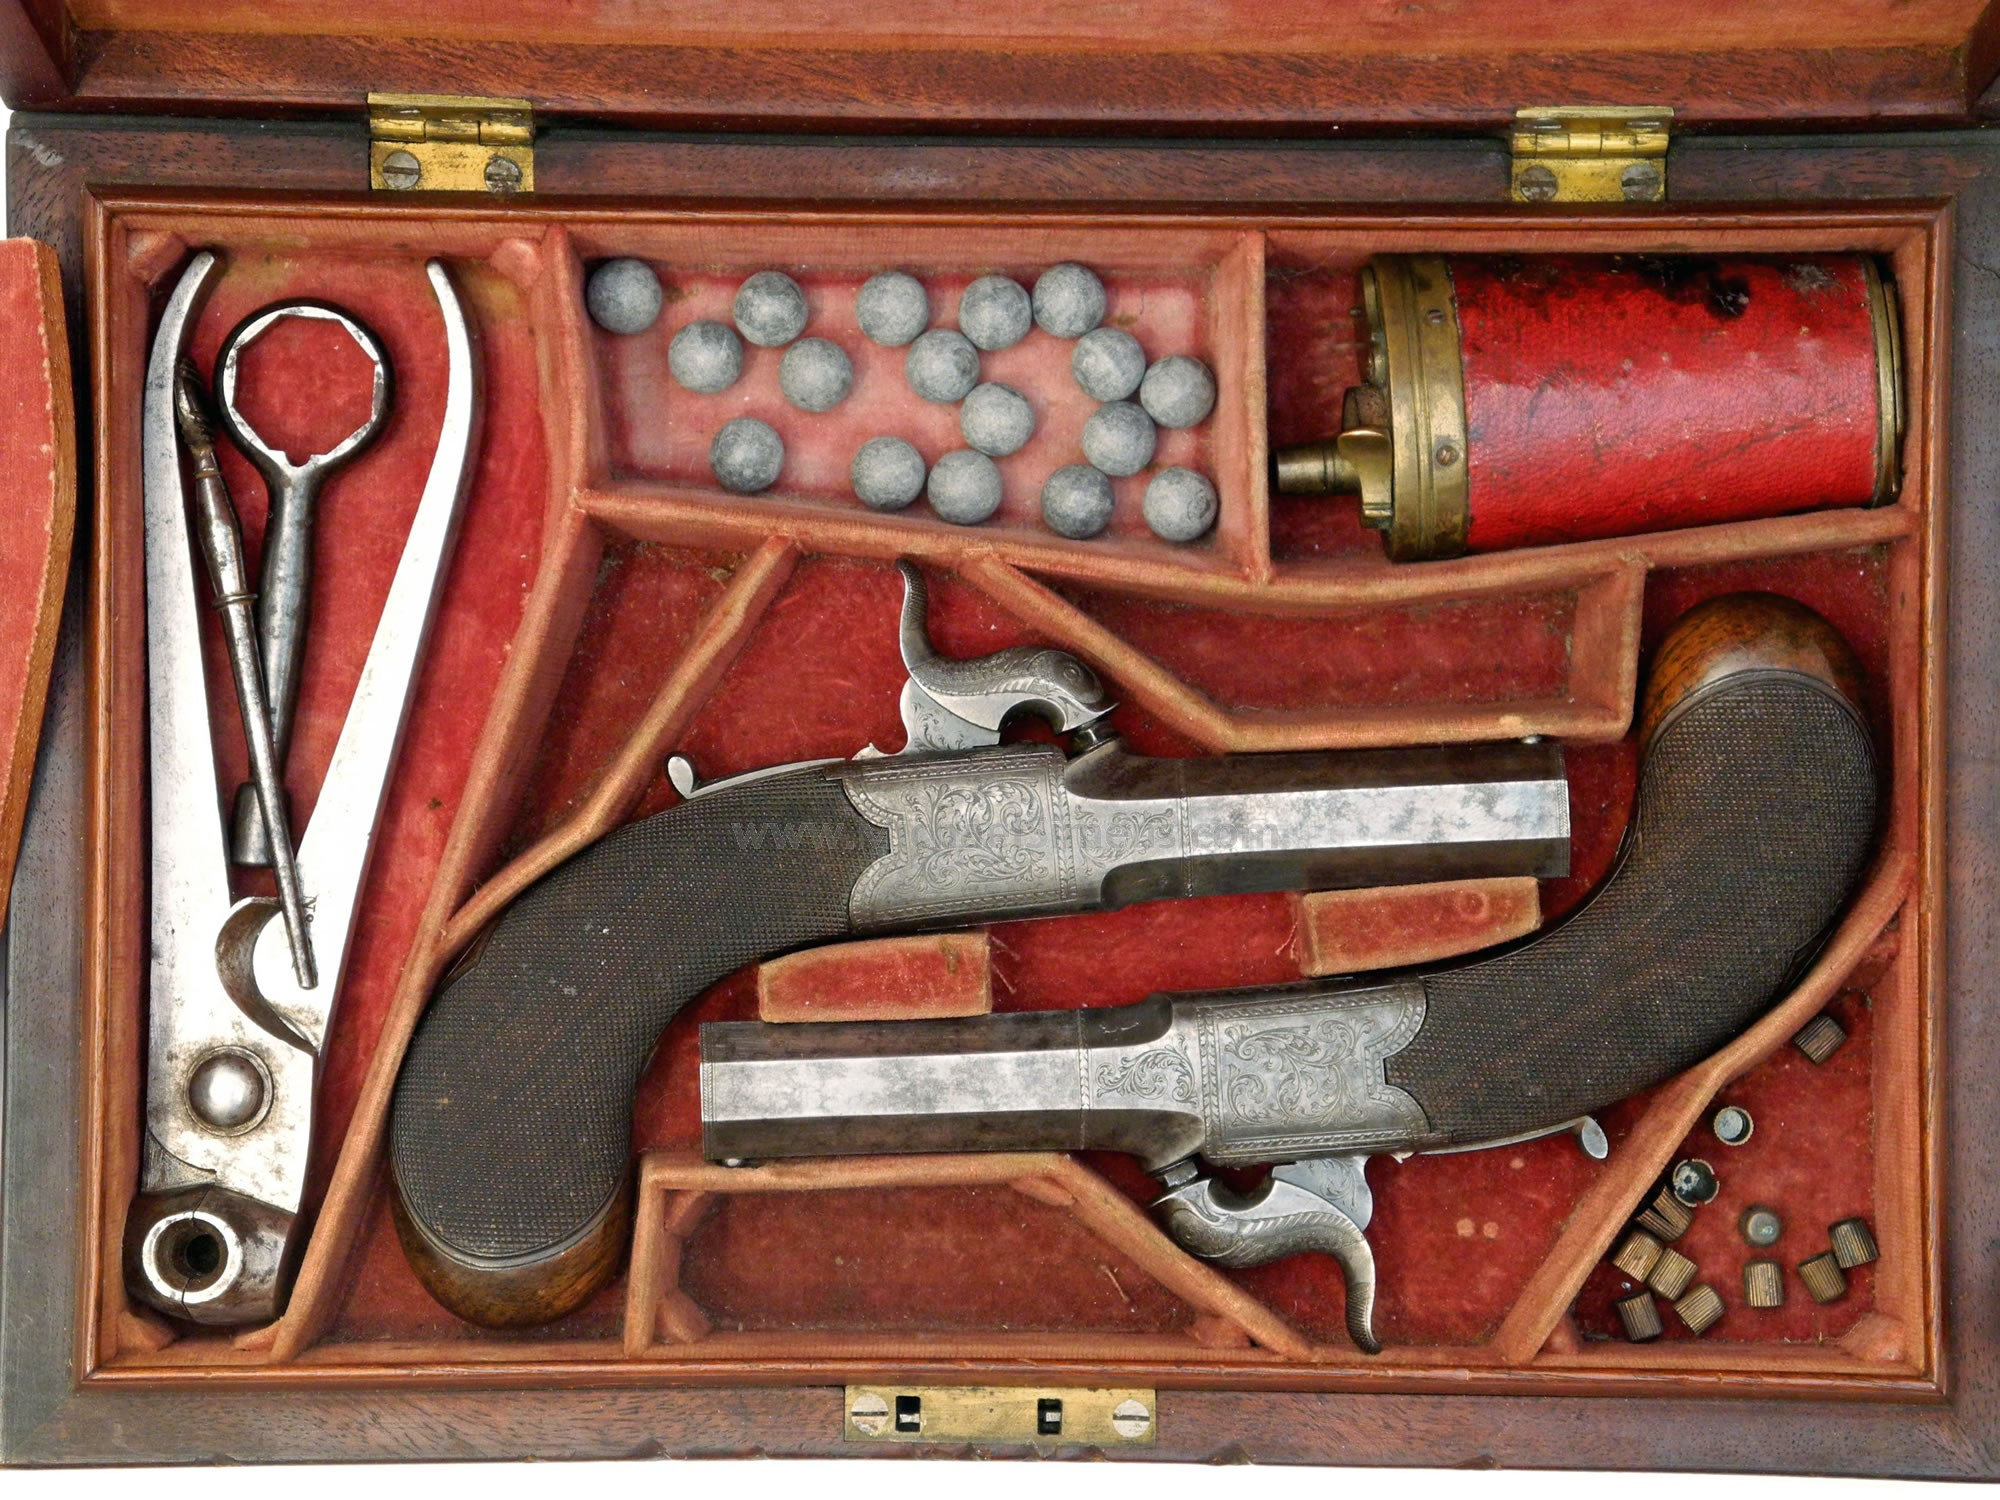 CASED MUFF PISTOLS BY T. HUTCHINSON, LONDON